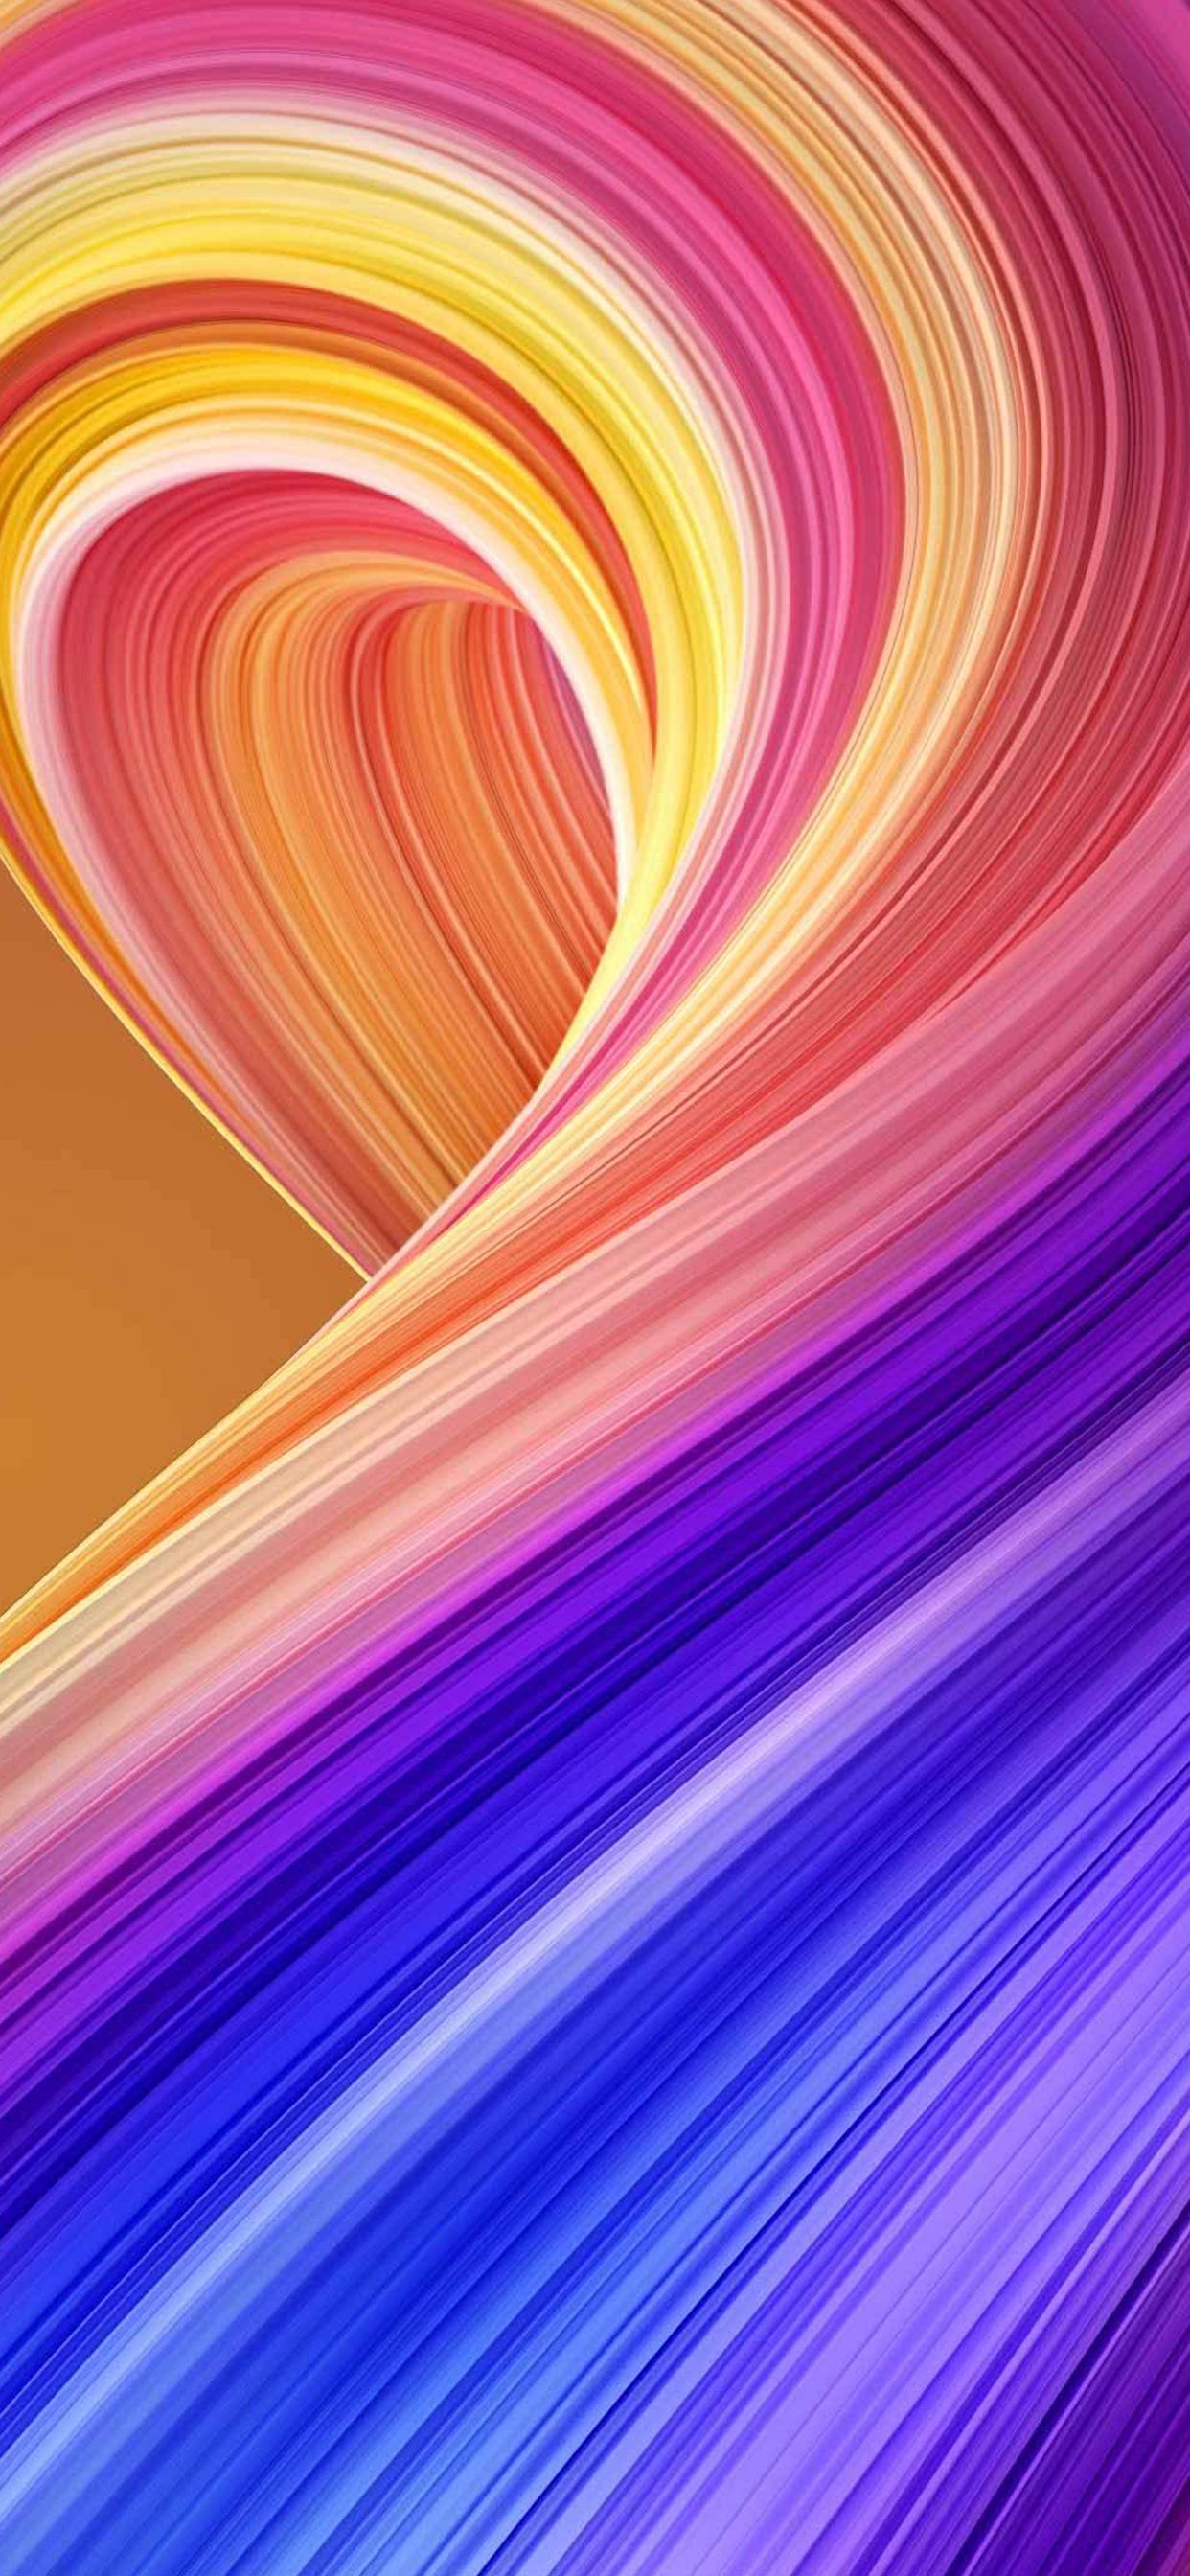 Top 10 Best Alternative Wallpaper For Apple Iphone Xs Max 07 Of 10